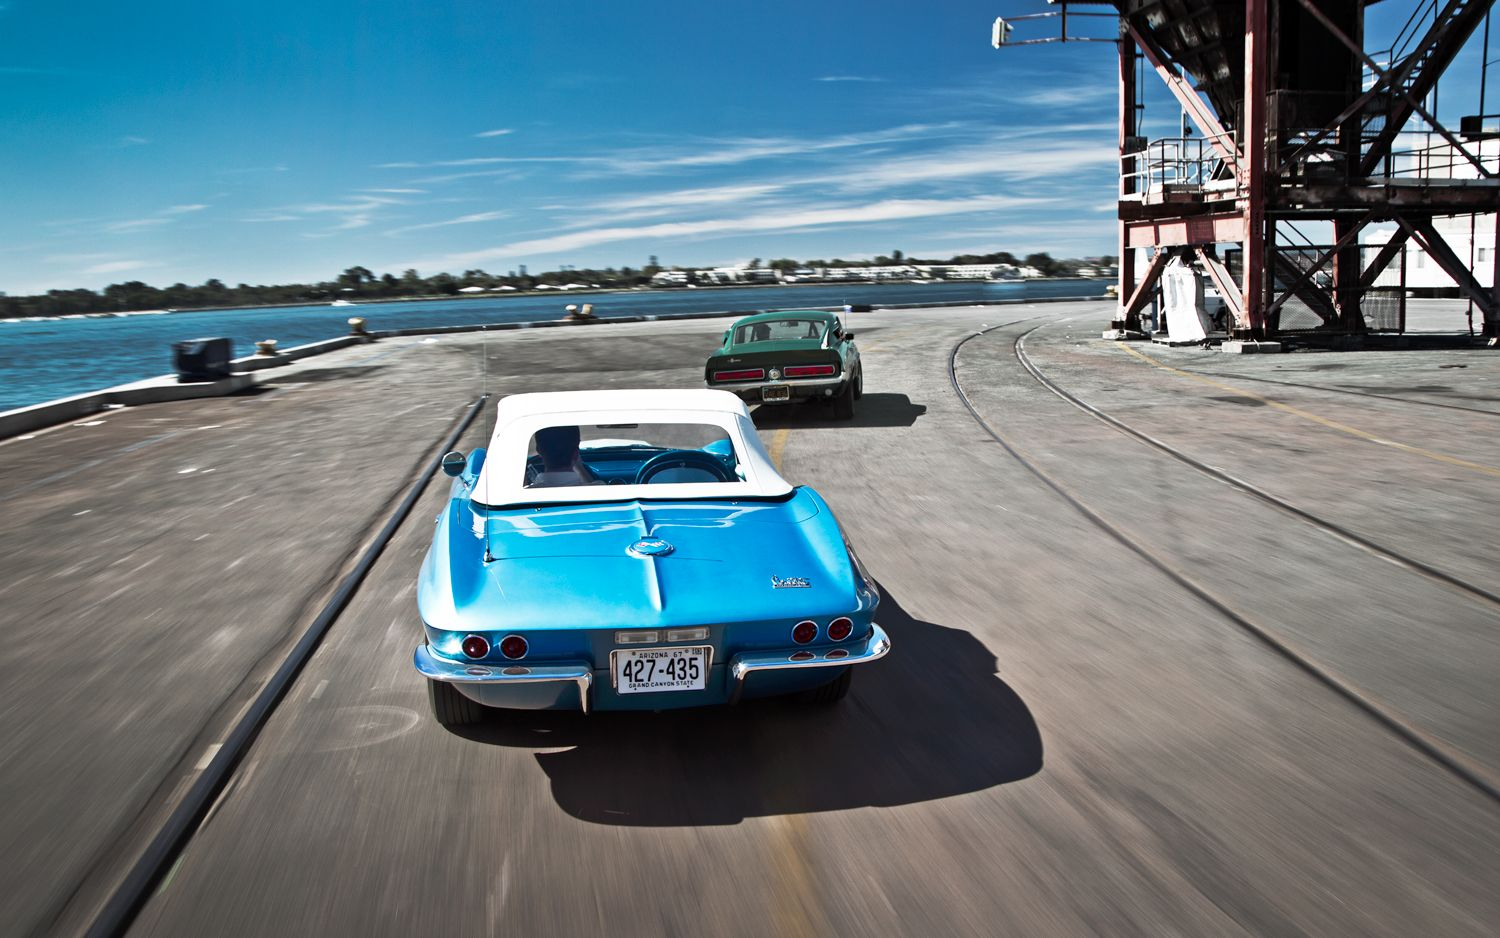 1967 Shelby Gt500 Vs 1967 Corvette Sting Ray 427 Chevy Corvette